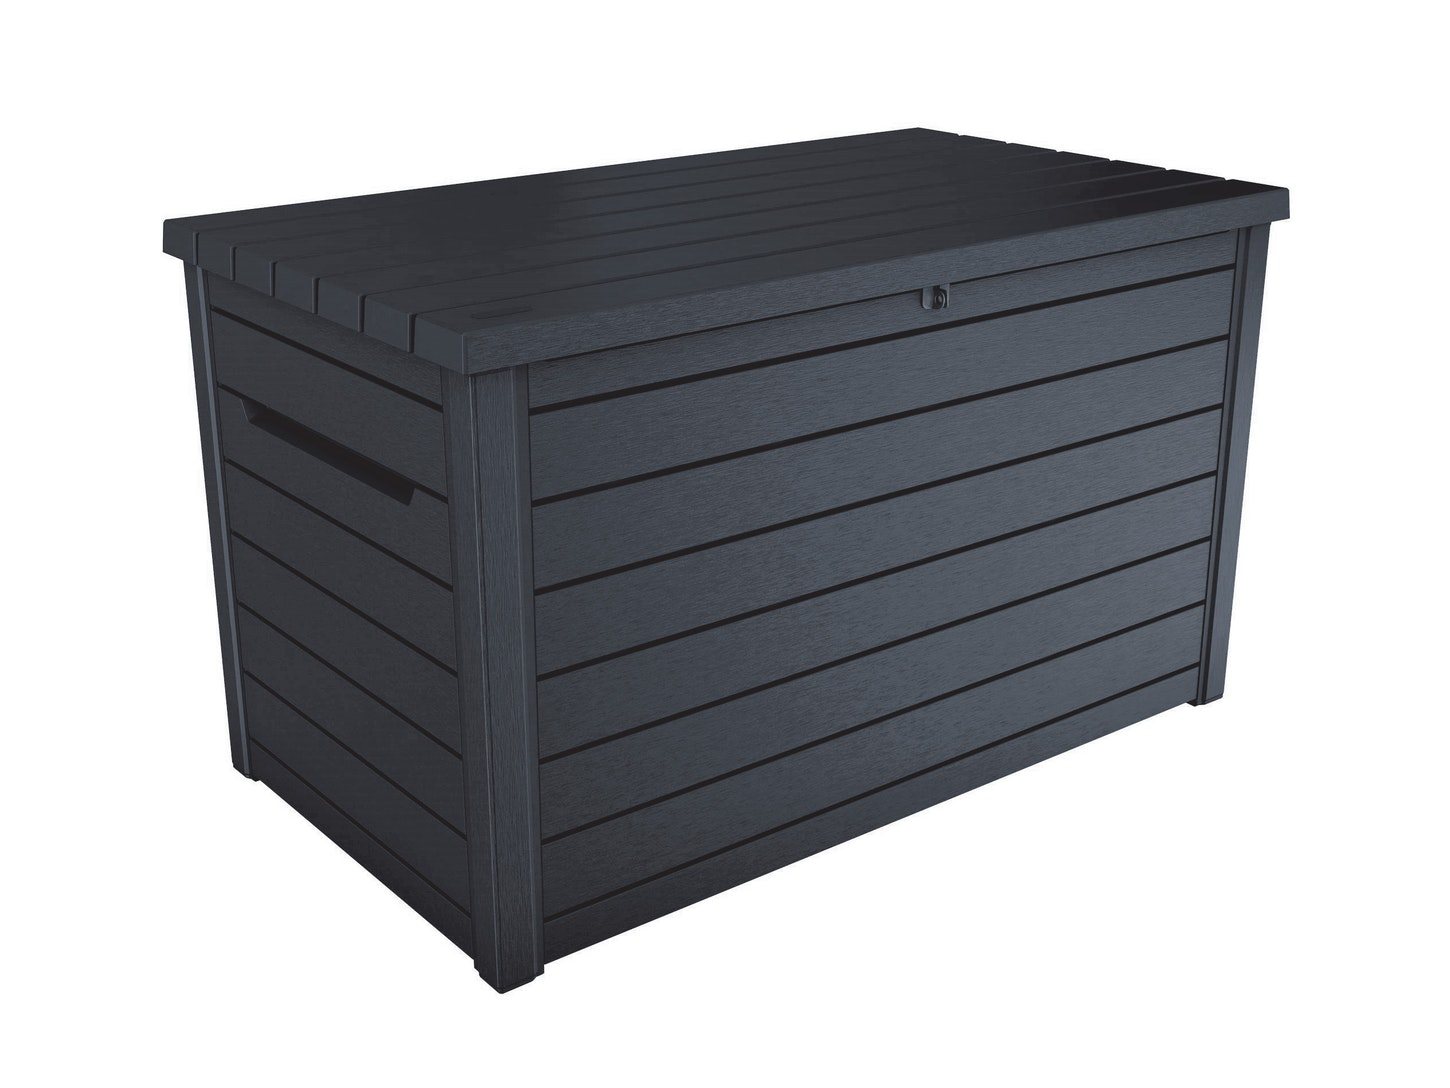 Keter ontario outdoor storage box 870l storage boxes outdoor furniture home outdoor living trade tested